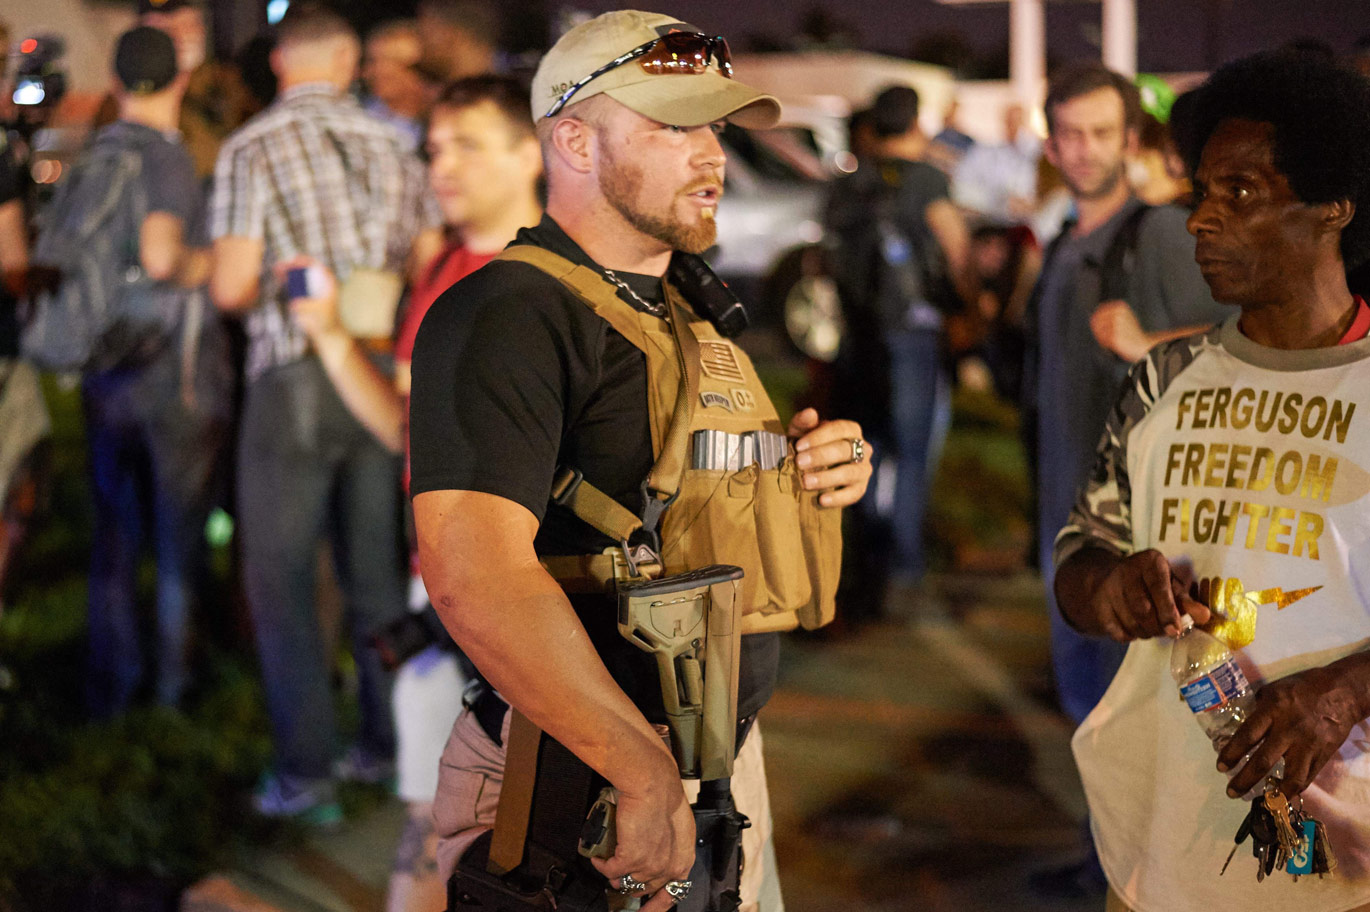 A member of the Oath Keepers brandishing a semiautomatic weapon during protests in Ferguson, August 2015.